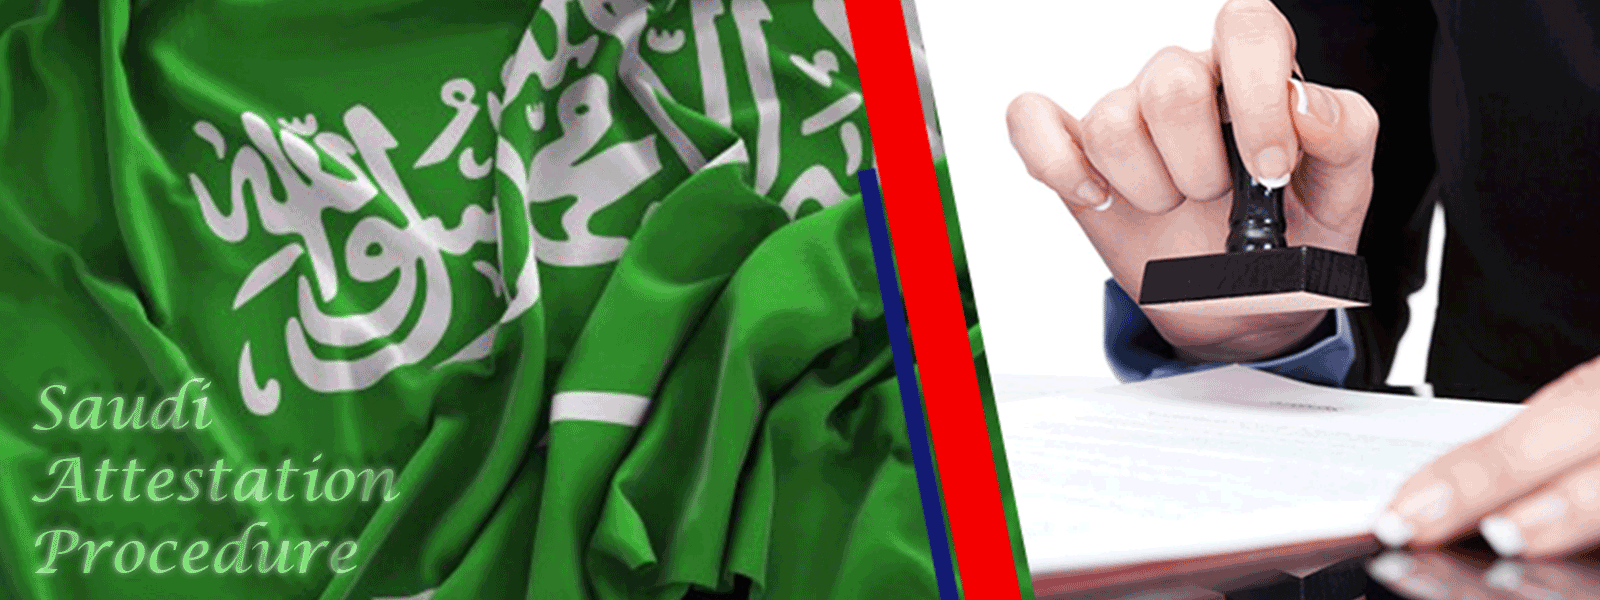 Saudi Attestation Procedure